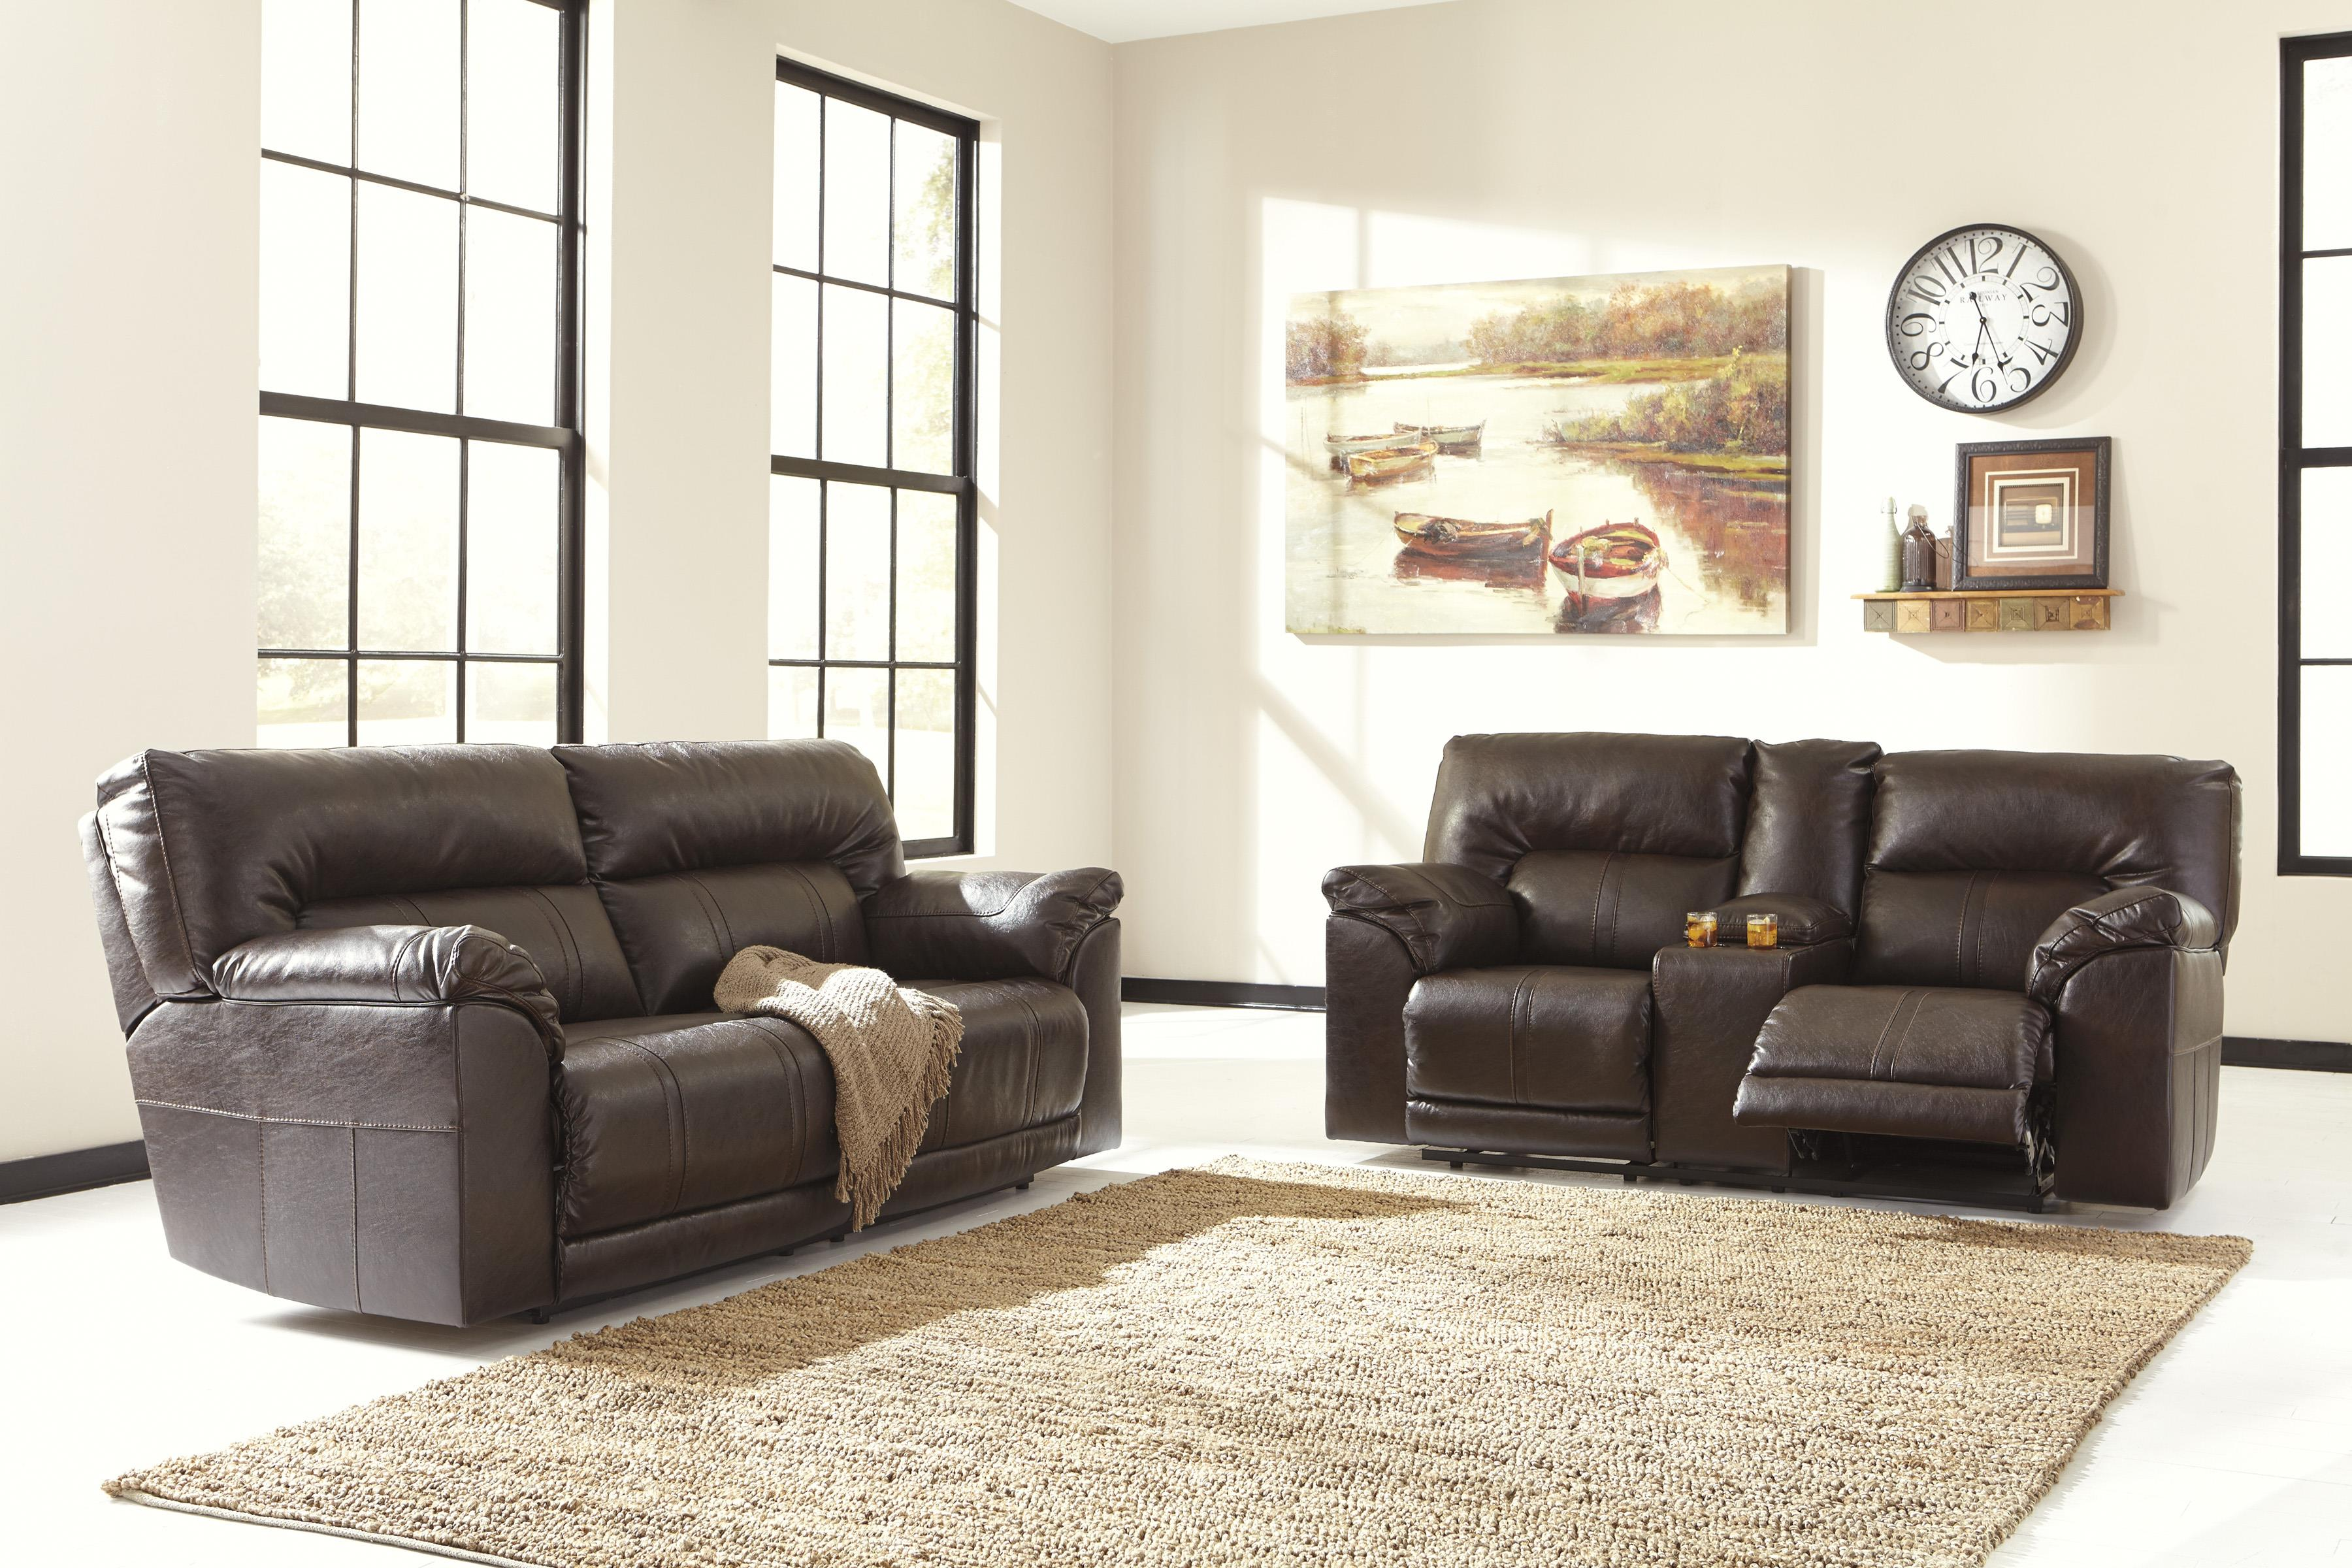 Benchcraft Barrettsville DuraBlend® Reclining Living Room Group - Item Number: 47301 Living Room Group 1